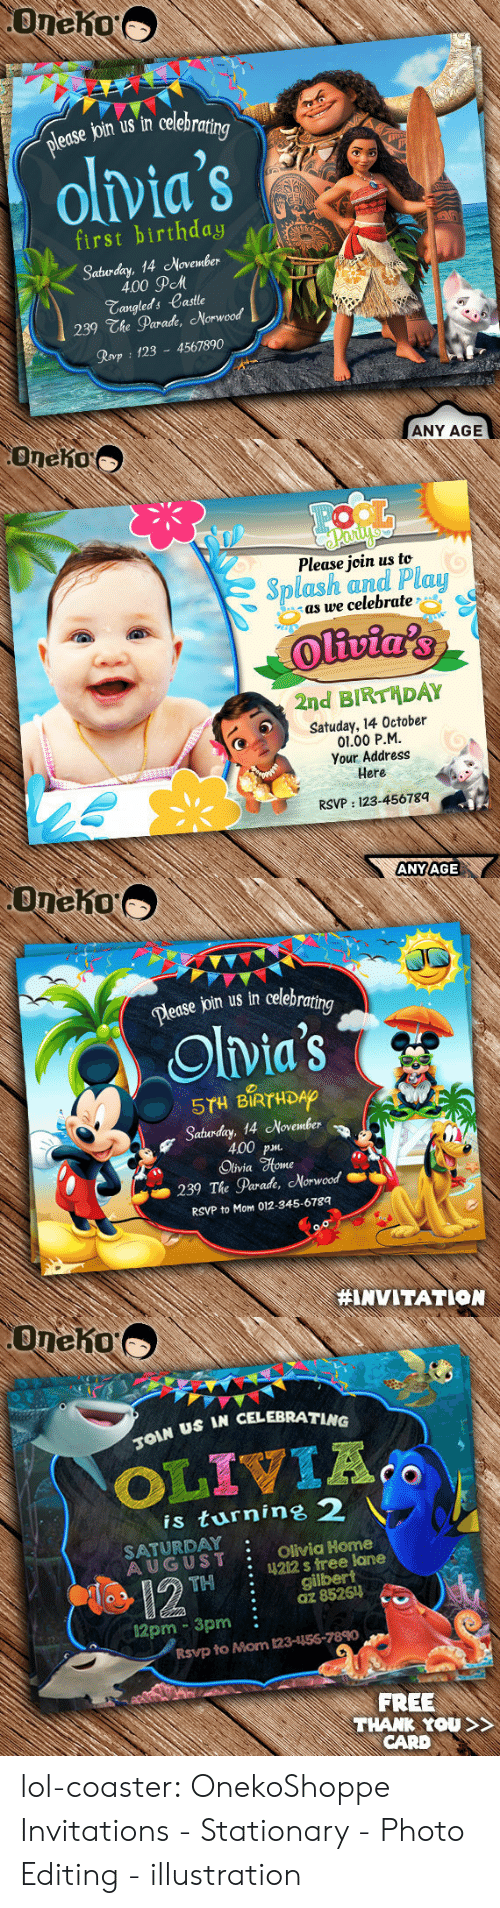 Birthday, Lol, and Tumblr: edse join us in celebra  olvia's  first birthday  Sabuday, 14 November  \  400 дем  Tangleds Castle  239 The Parade, Norwood  Rovp 123 4567890  ANY AGE   Oneho  Please join us to  Splash and Plau  as we celebrate  2nd BIRTHDAY  Satuday, 14 October  01.00 P.M  Your Address  Here  RSVP: 123-45678q  ANYAGE   Dease join us in celebra  ing  Olvia's  5TH BIRTHDAO  Saturday, 14 November  400 p  Olivia %one  239 The Parade, Morwood  RSVP to Mom 012-345-6789  #INVITATION   US IN CELEBRATING  is turnine 2  SATURDAY  AUGUST Olivia Home  : 4212 s tree lane  THgilbert  :az 85261  12pm 3pm:  Rsvp to Mom 123-156-7890  FREE  THANK YOU  CARD lol-coaster:  OnekoShoppe Invitations - Stationary - Photo Editing - illustration